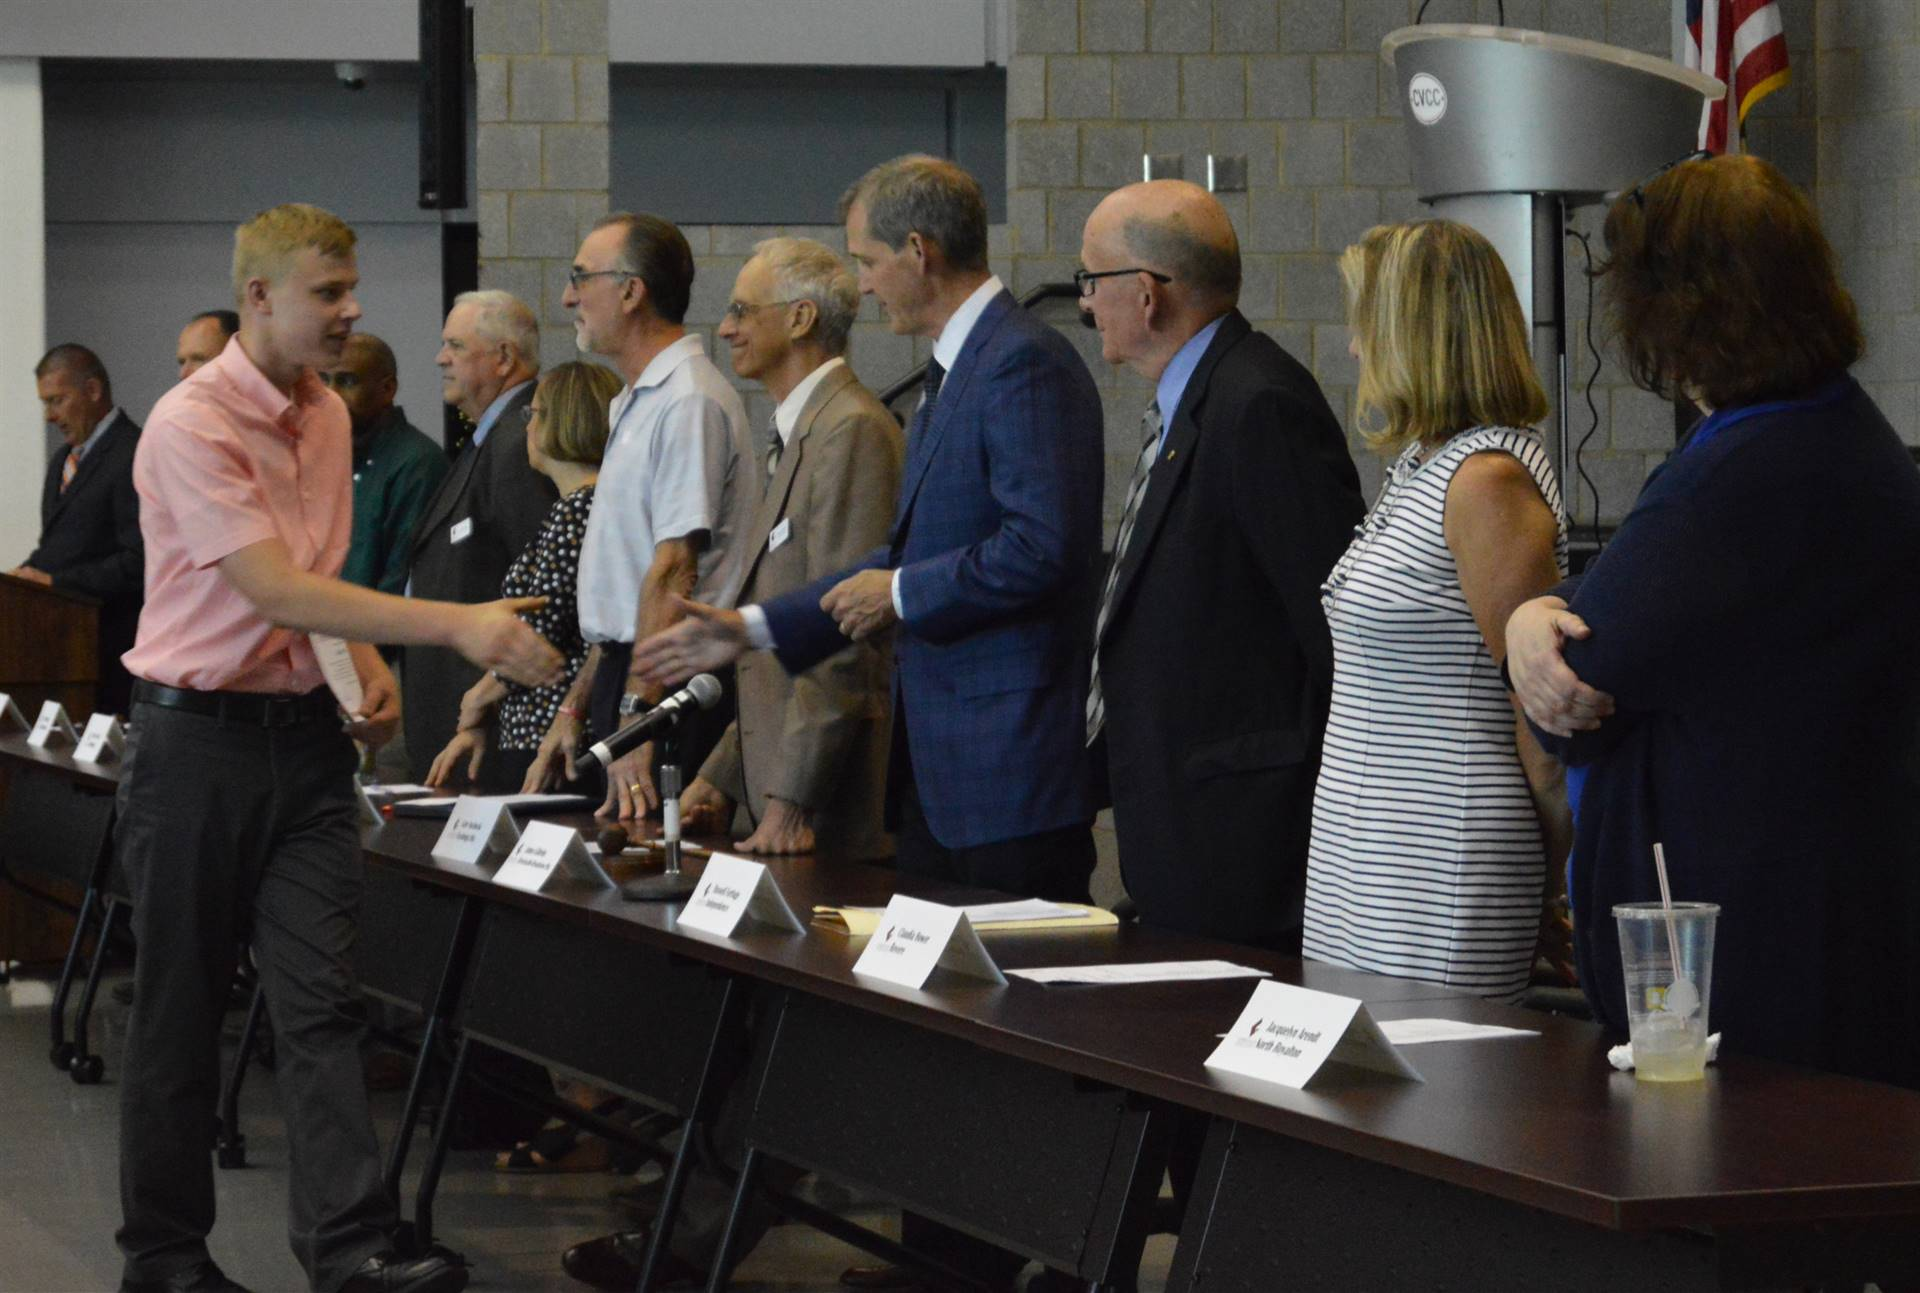 Students shaking hands with Board members